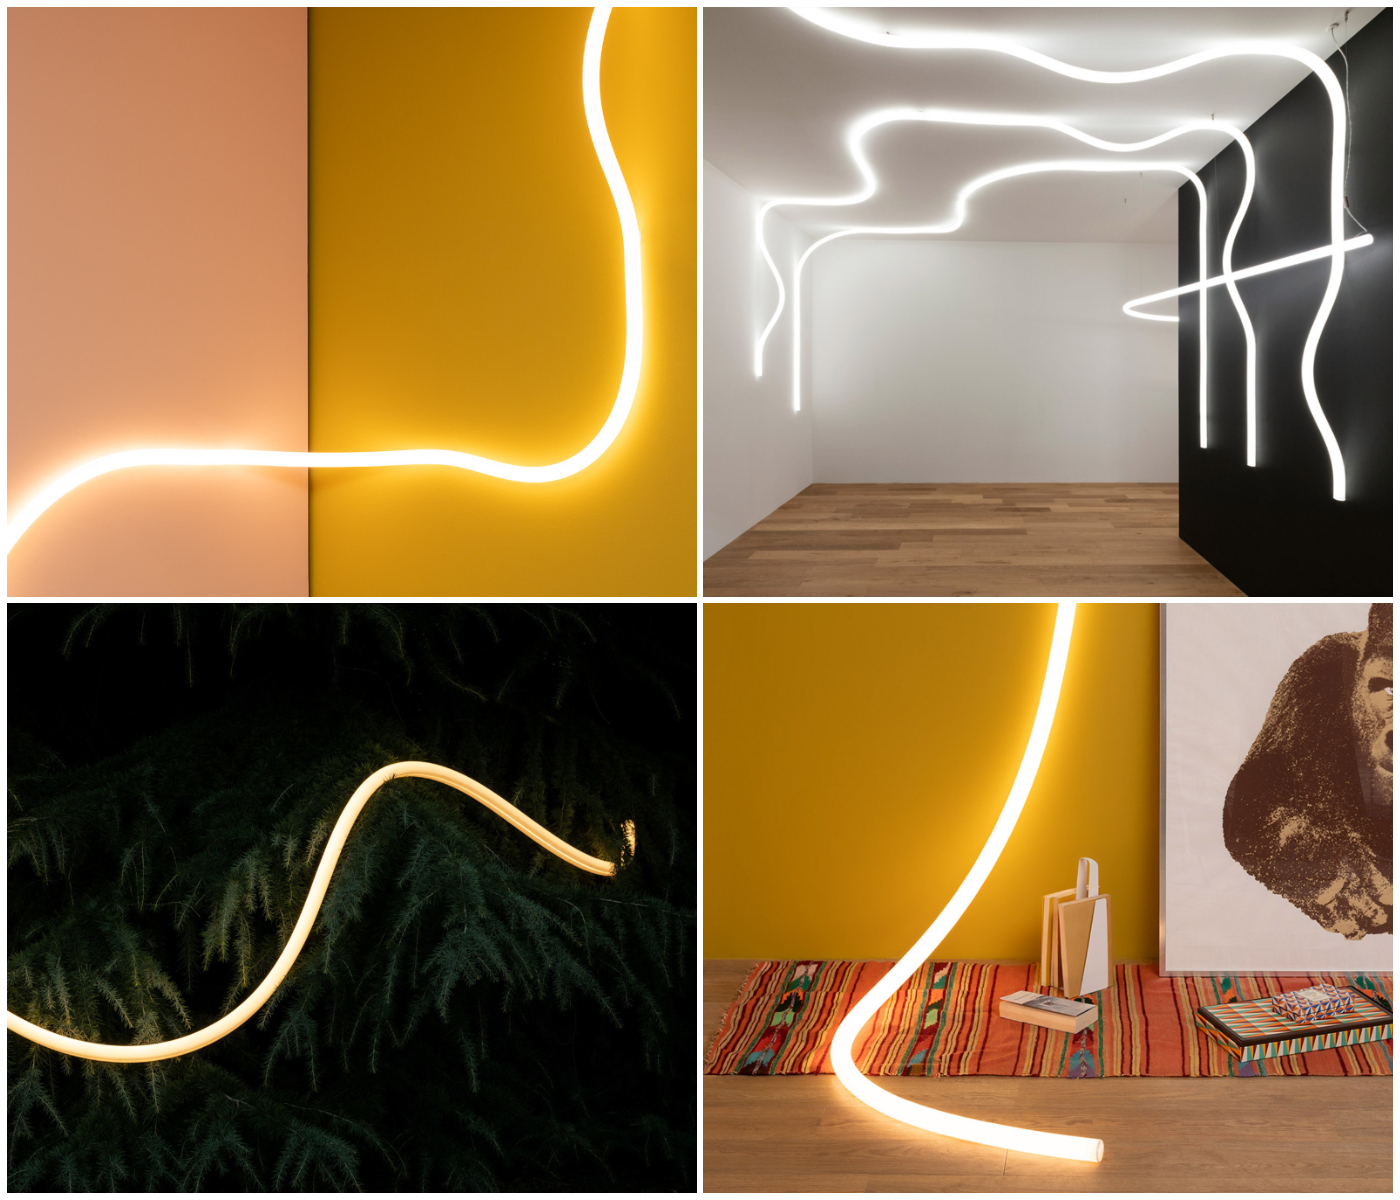 La Linea - Artemide, Lighting Design srl